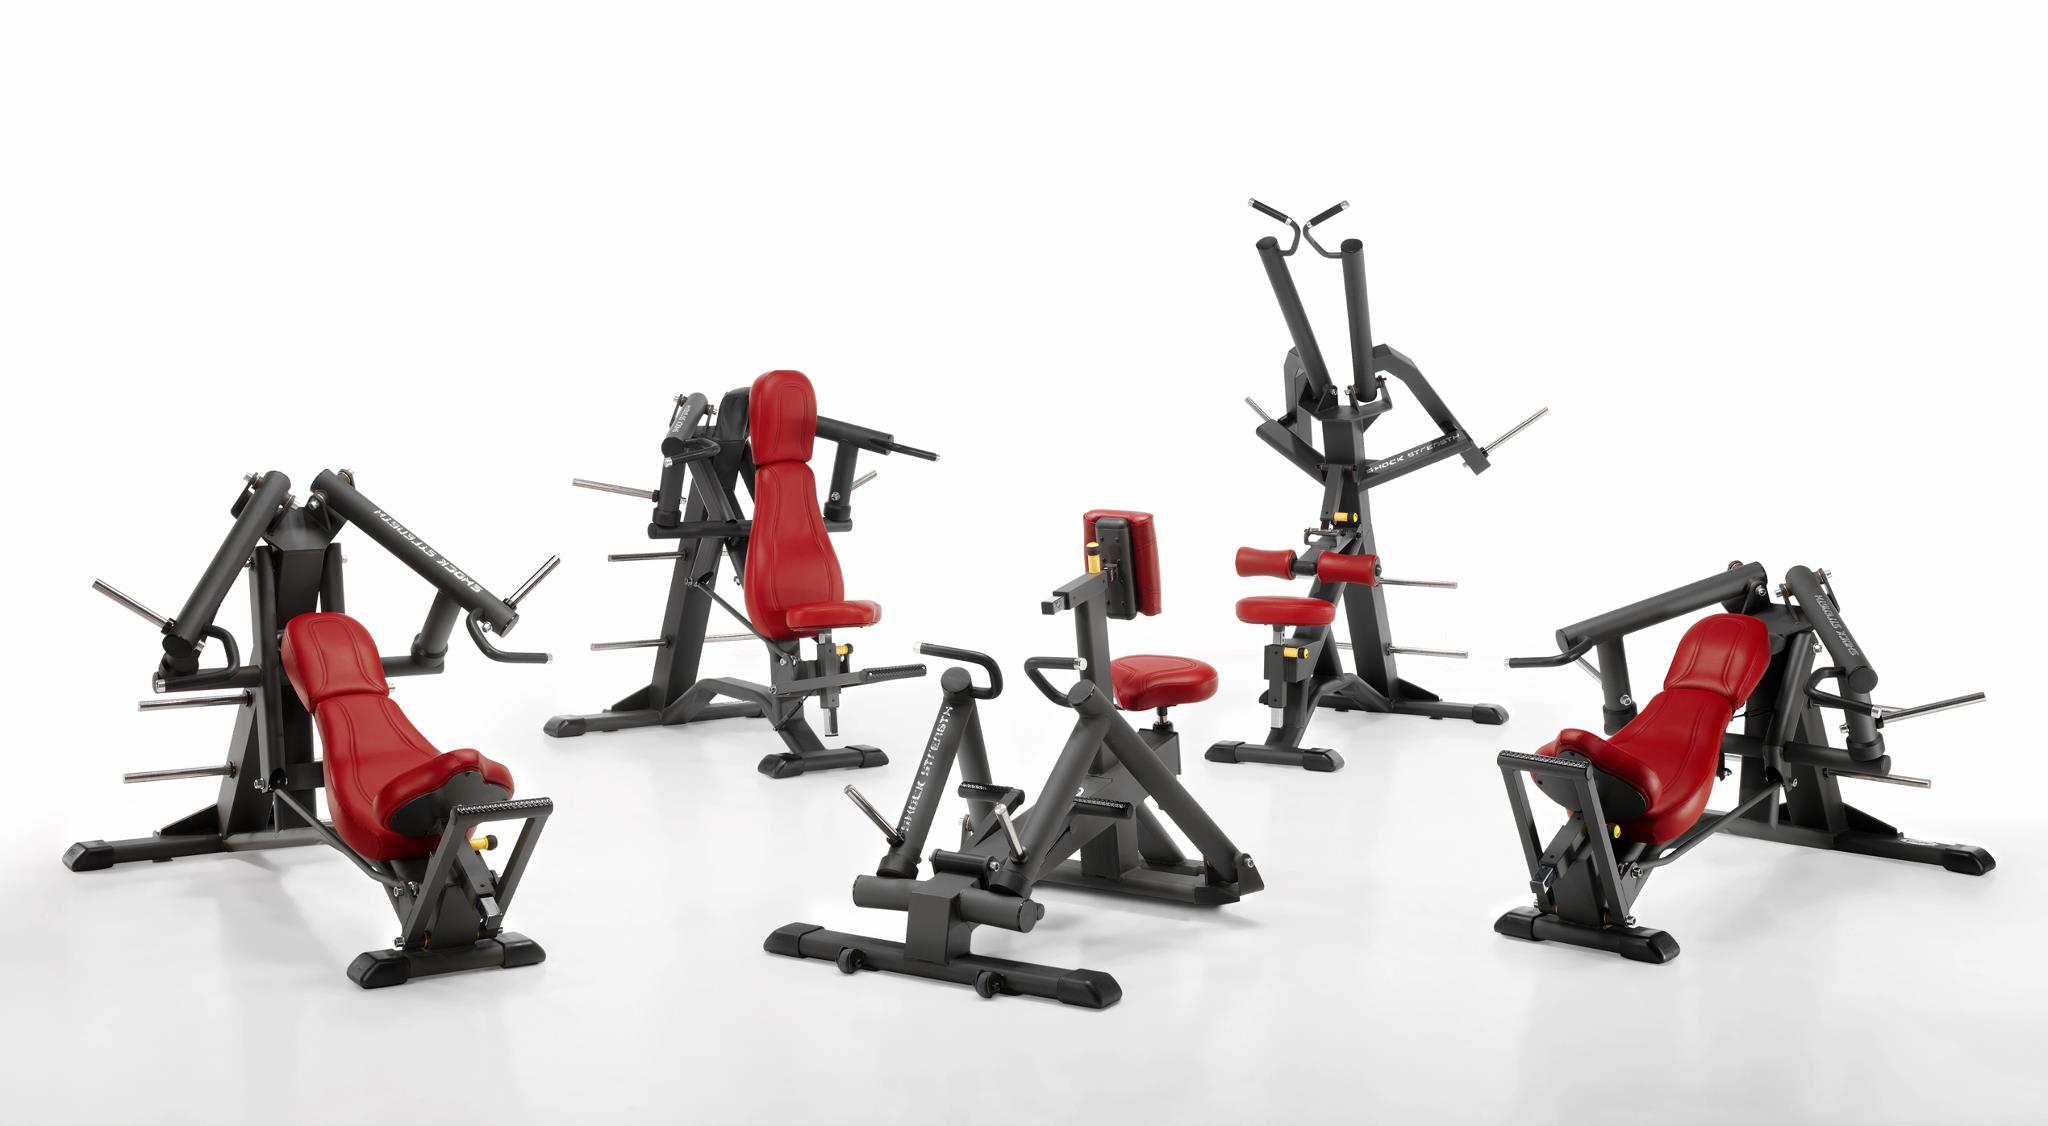 How to find the best gym equipment - ClickHowTo